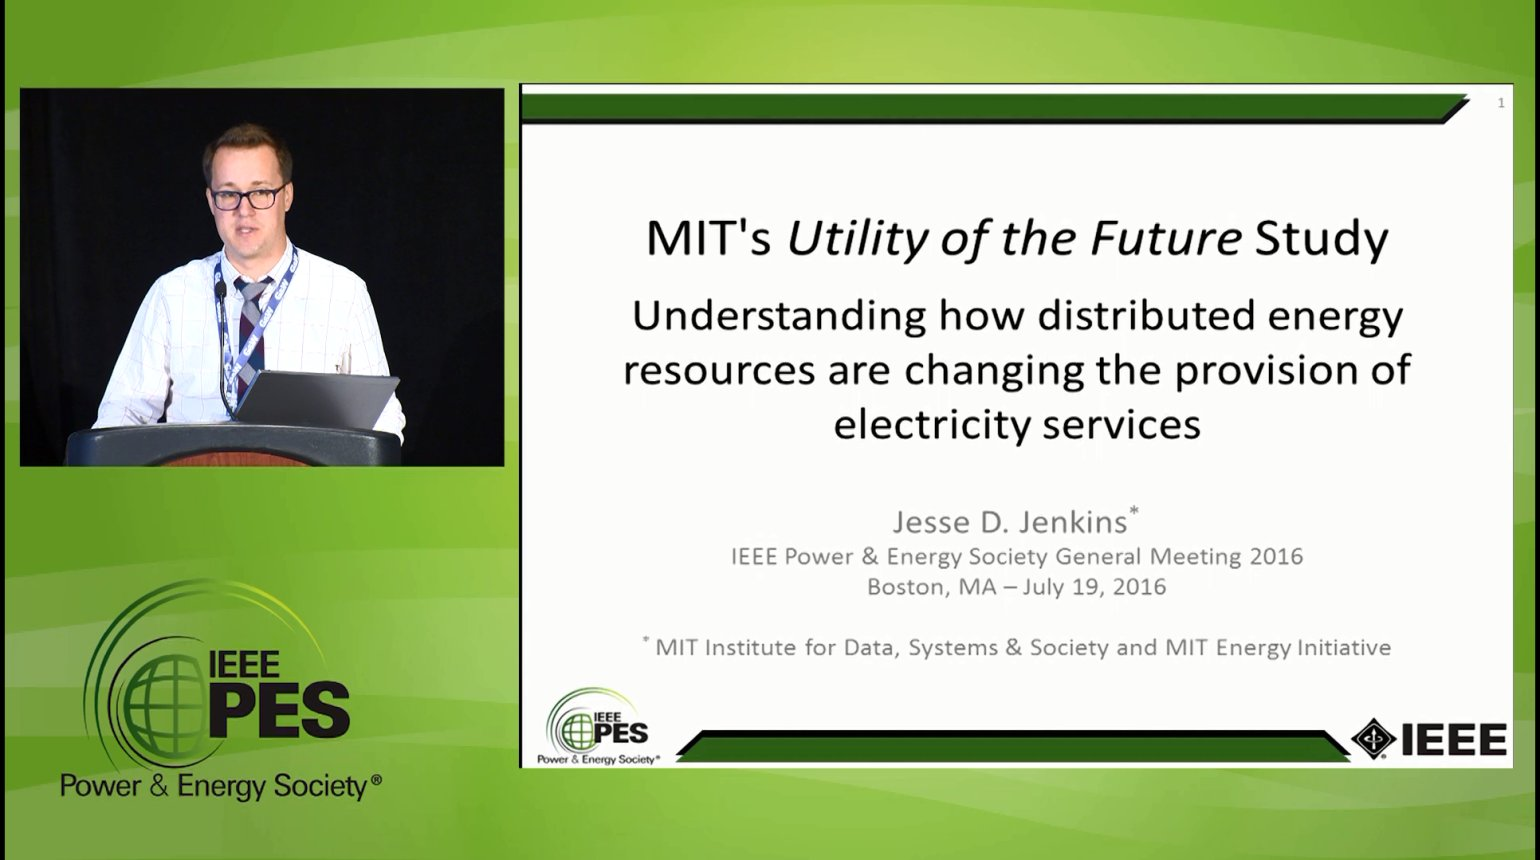 Late Breaking News - MIT's Utility of the Future Study (Video)